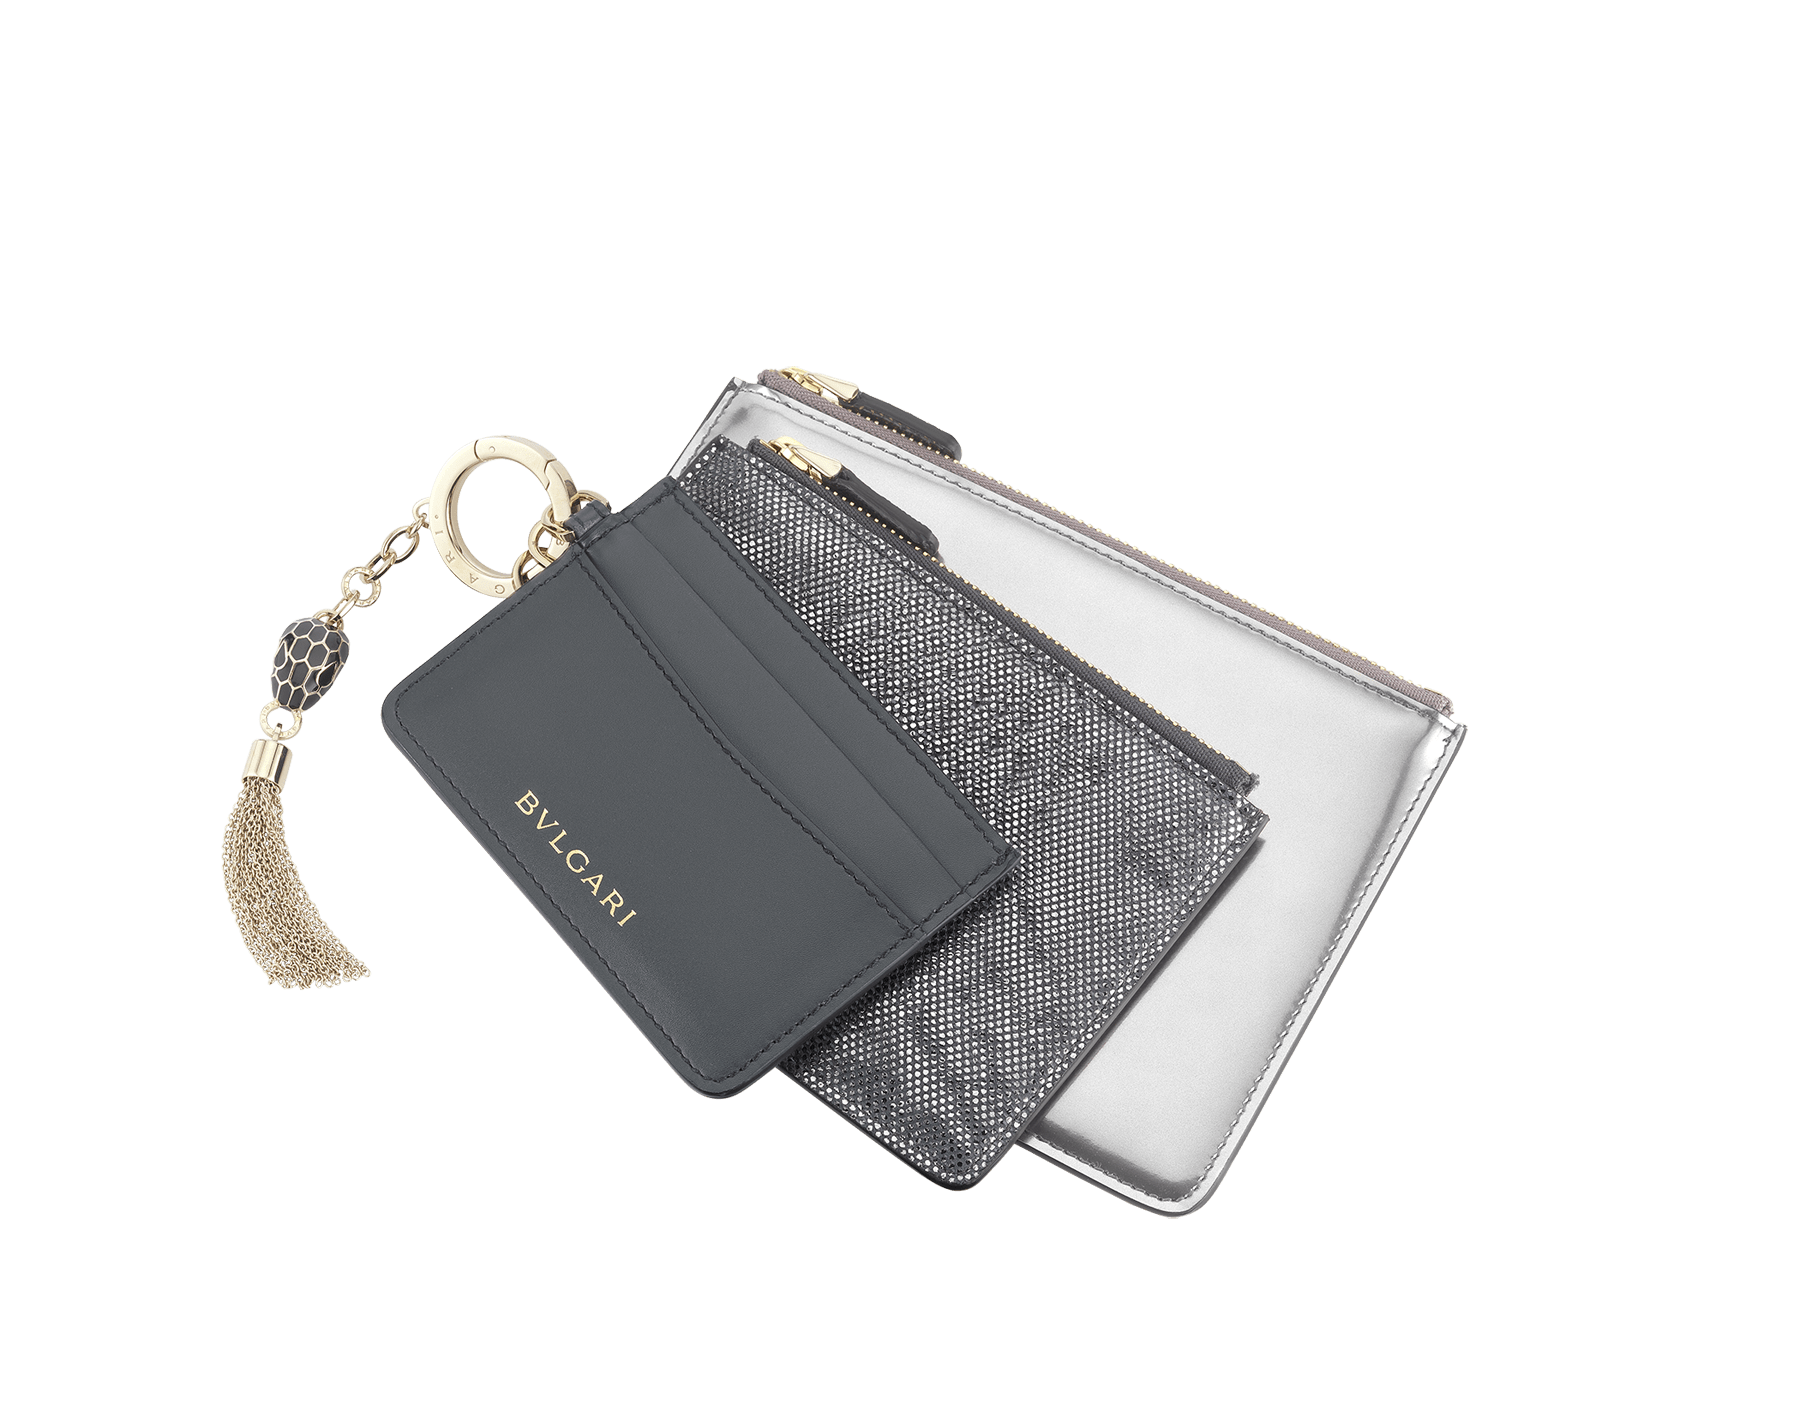 Serpenti Forever Trio in charcoal diamond calf leather, silver brushed metallic calf leather and charcoal diamond metallic karung skin. Brass light gold plated keyring with Serpenti head charm in black and charcoal diamond enamel, with black enamel eyes. 288469 image 1